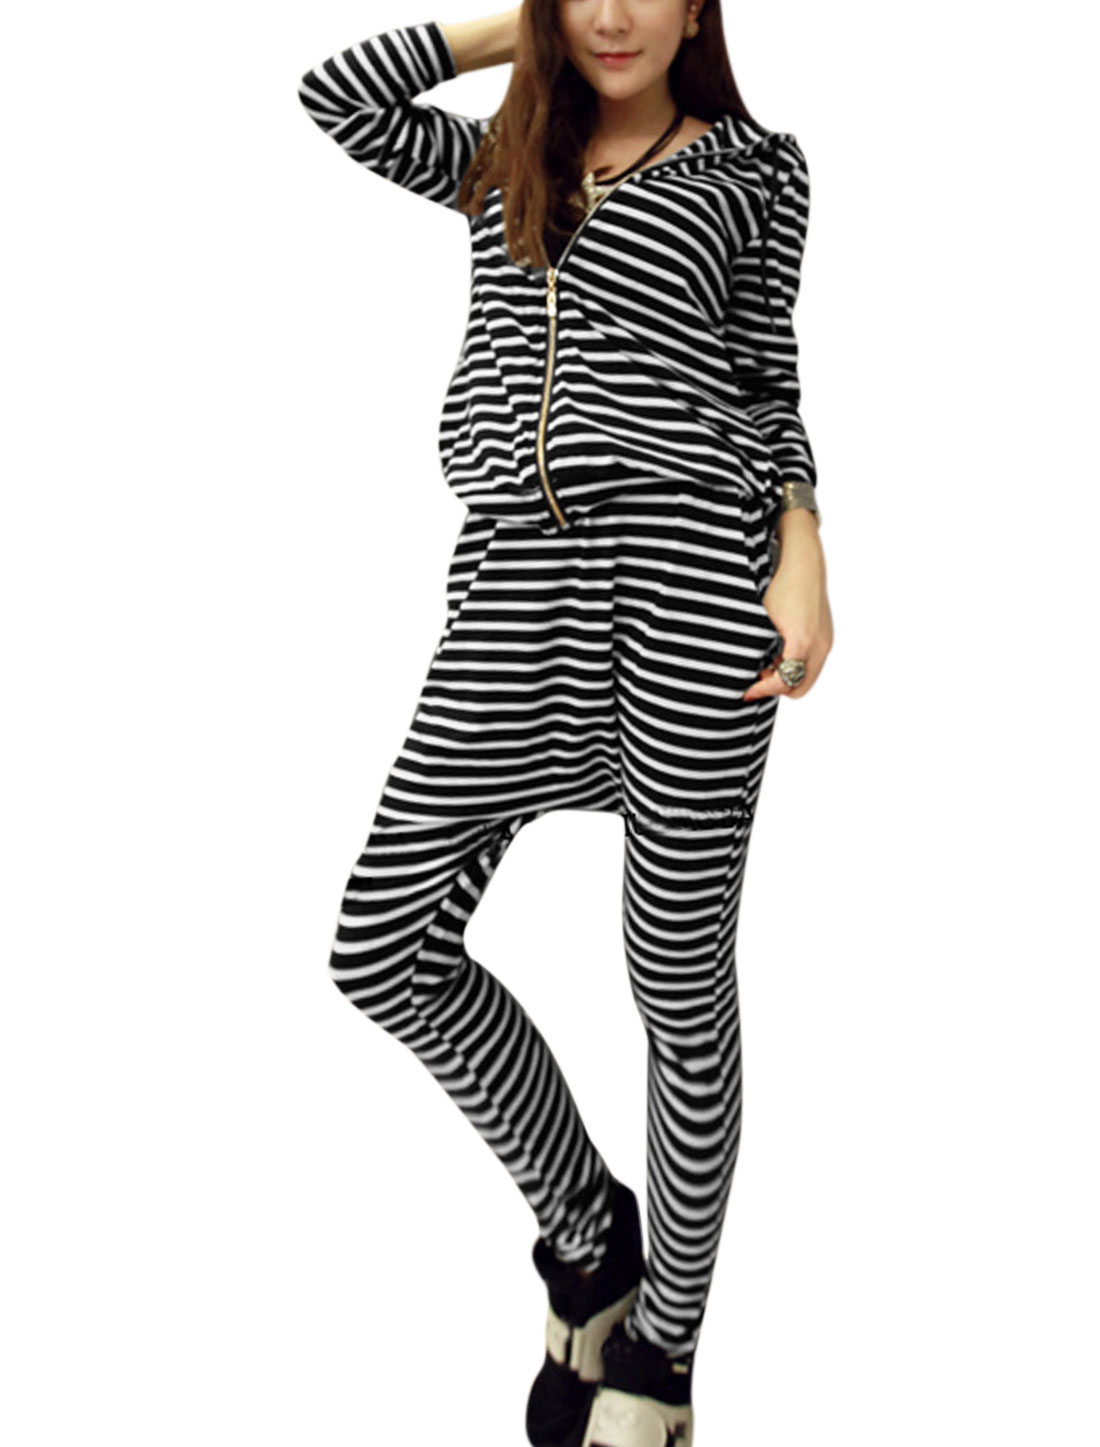 Ladies Black White Long Sleeves Stripes Hoodie w Elastic Waist Harem Pants S